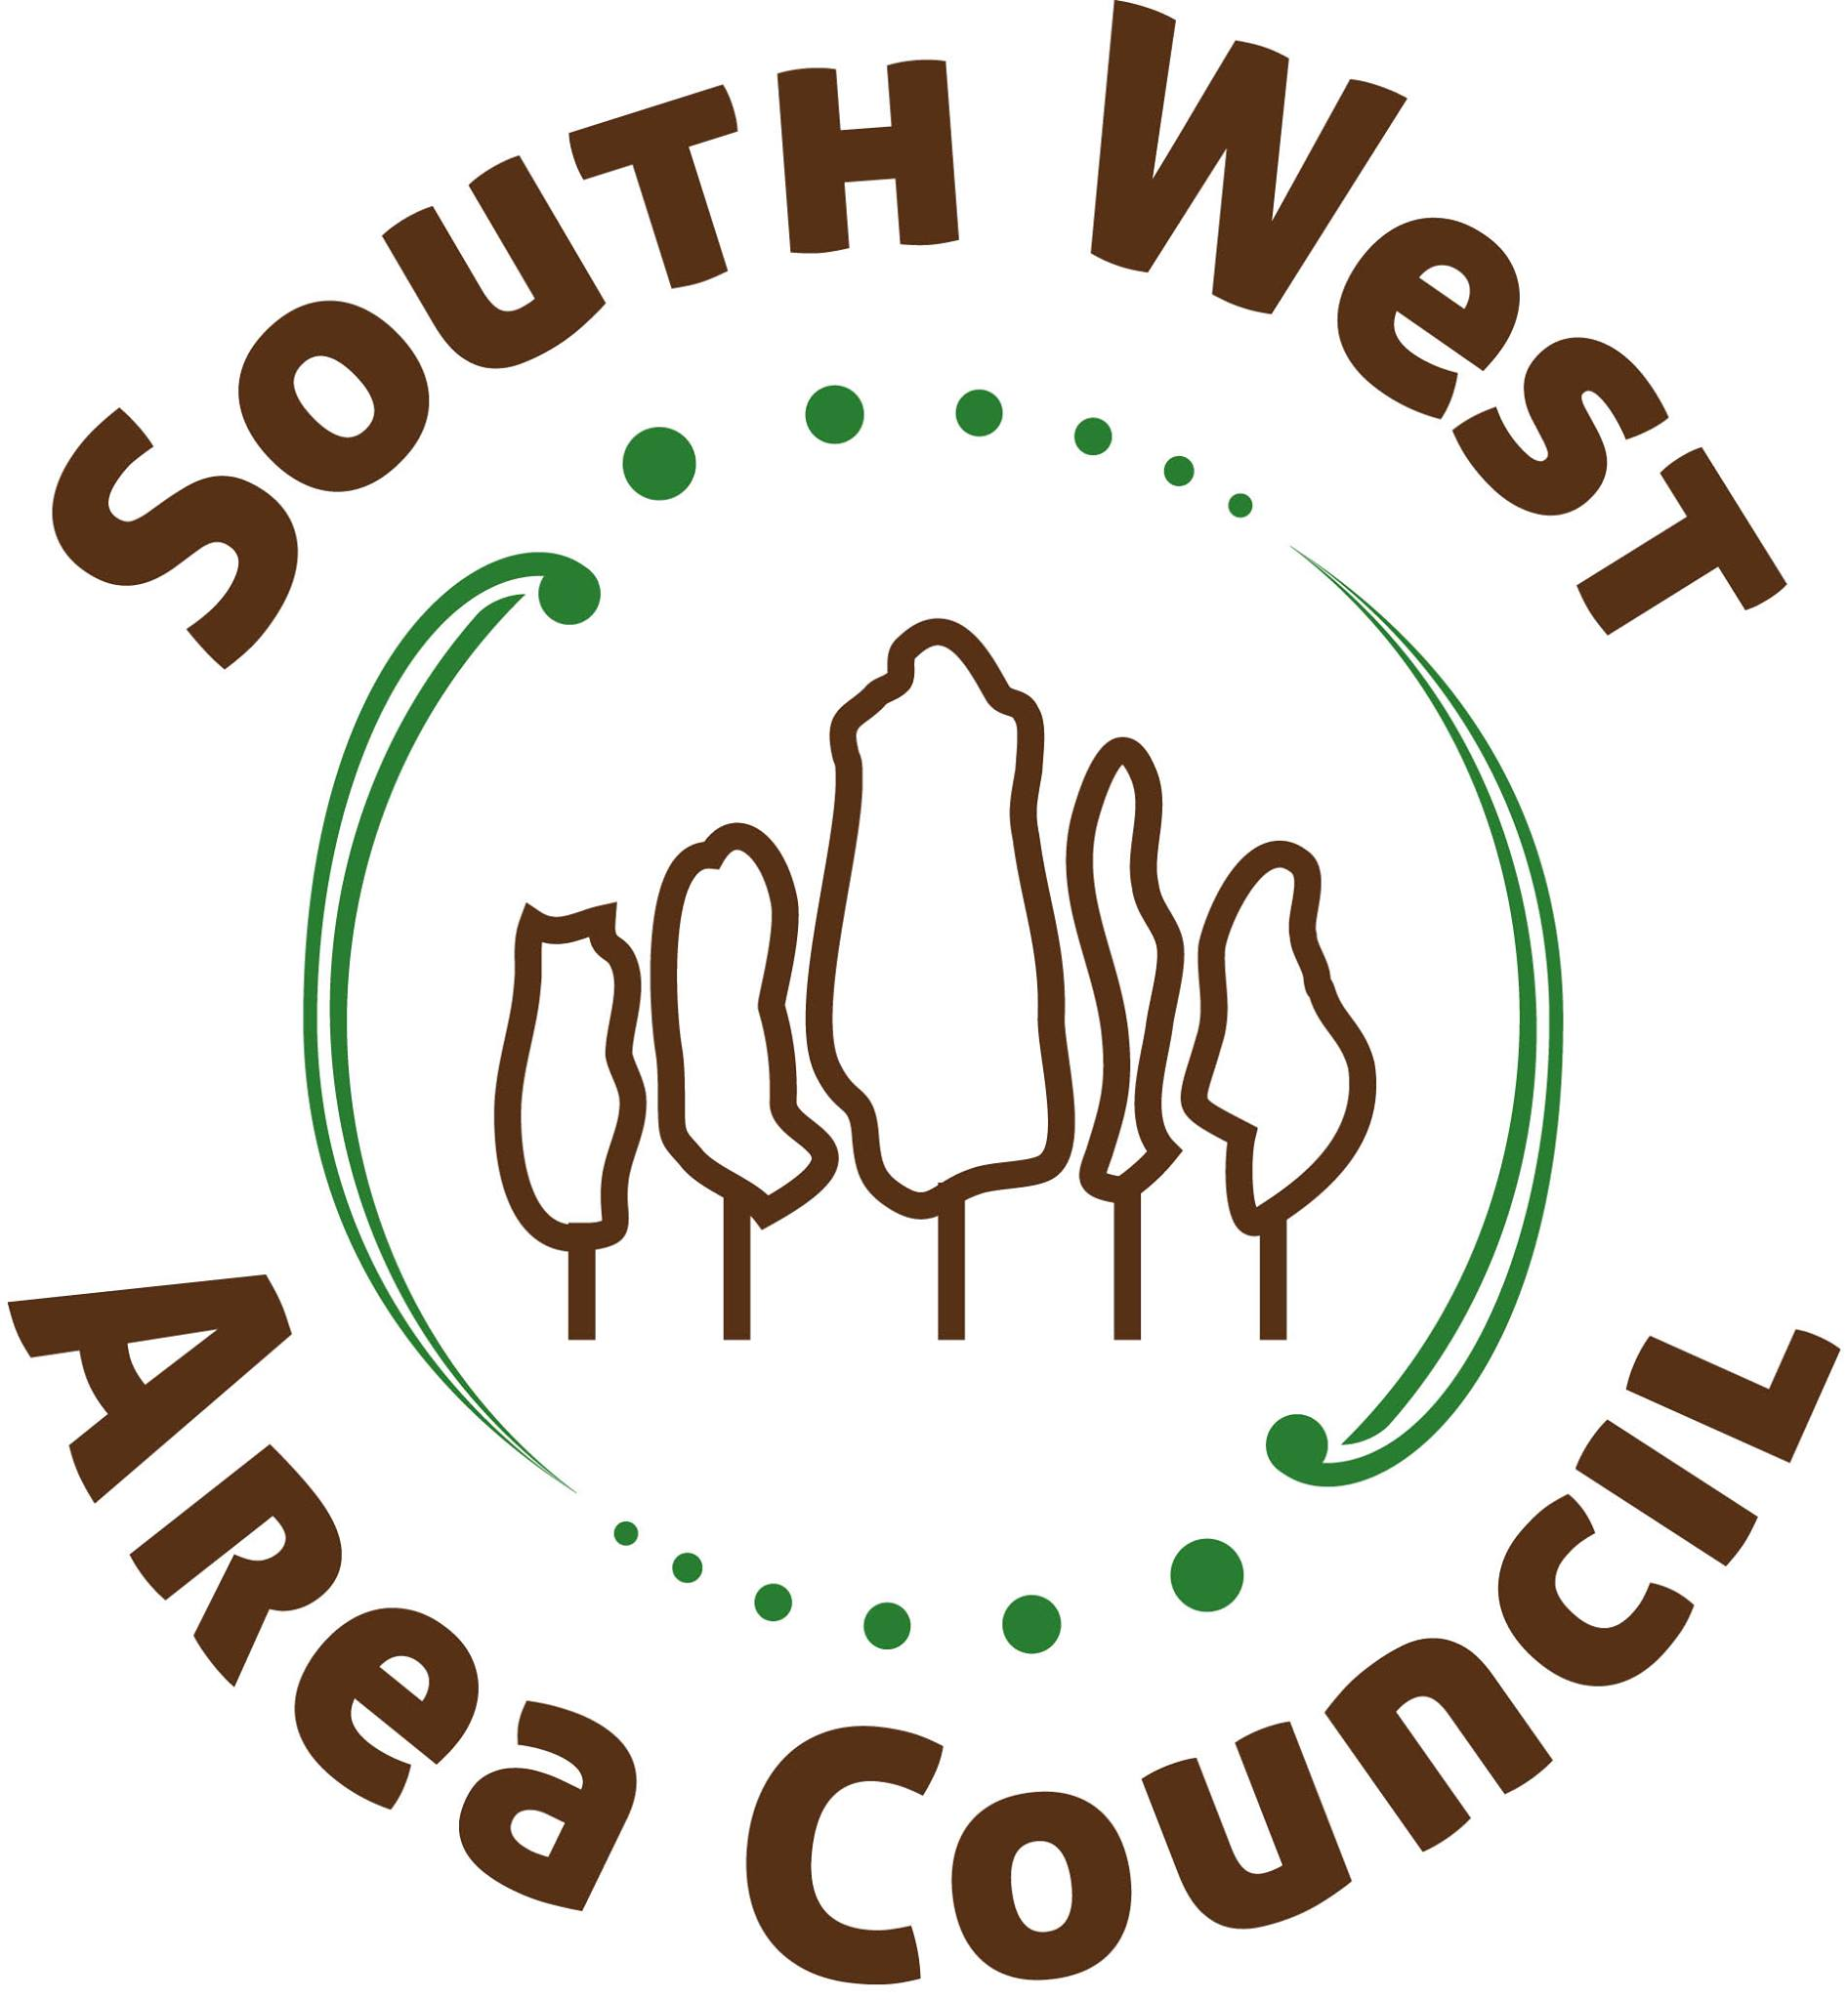 SWAC - South West Area Council